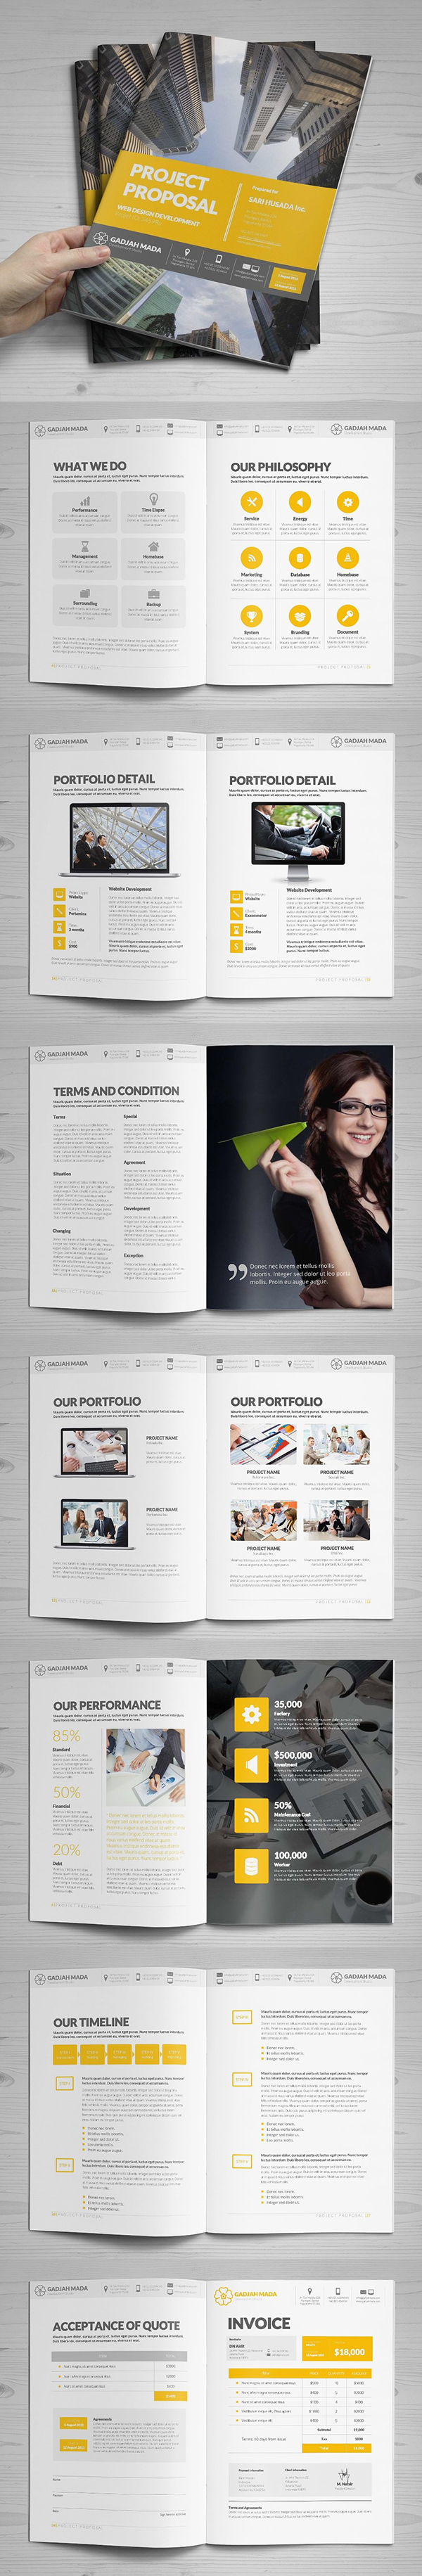 Business proposal templates design graphic design junction professional business proposal templates design 14 wajeb Images